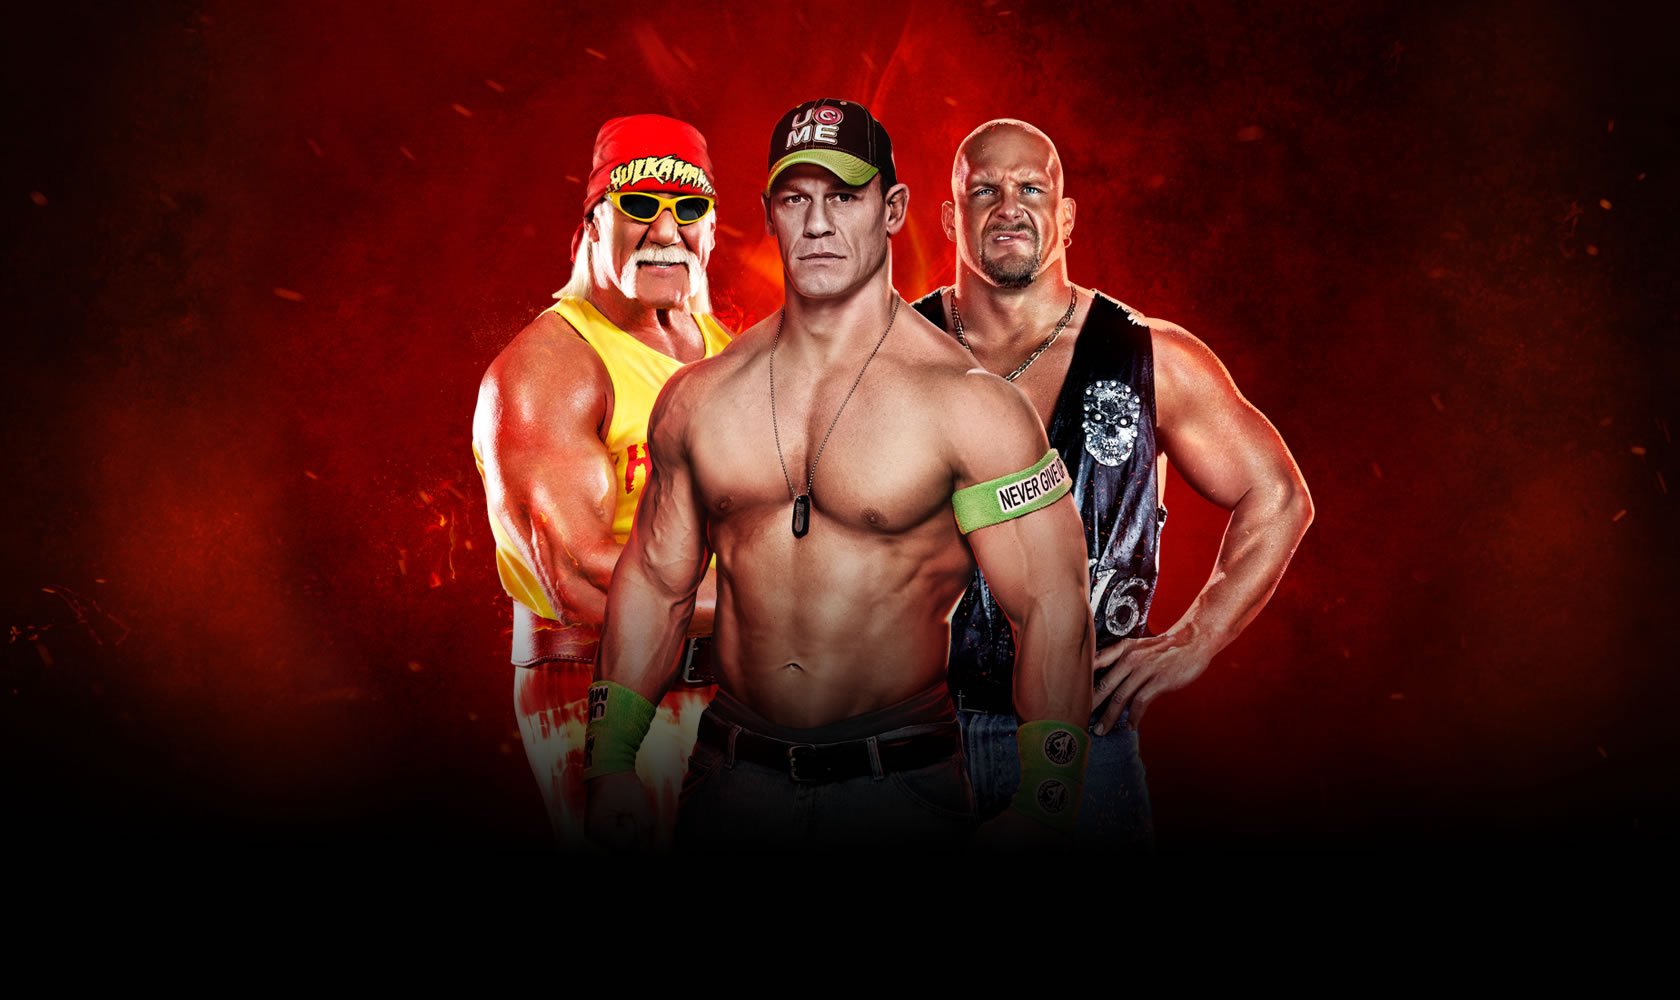 Wwe 2k14 Download For Pcsx2 | Apk Data Download